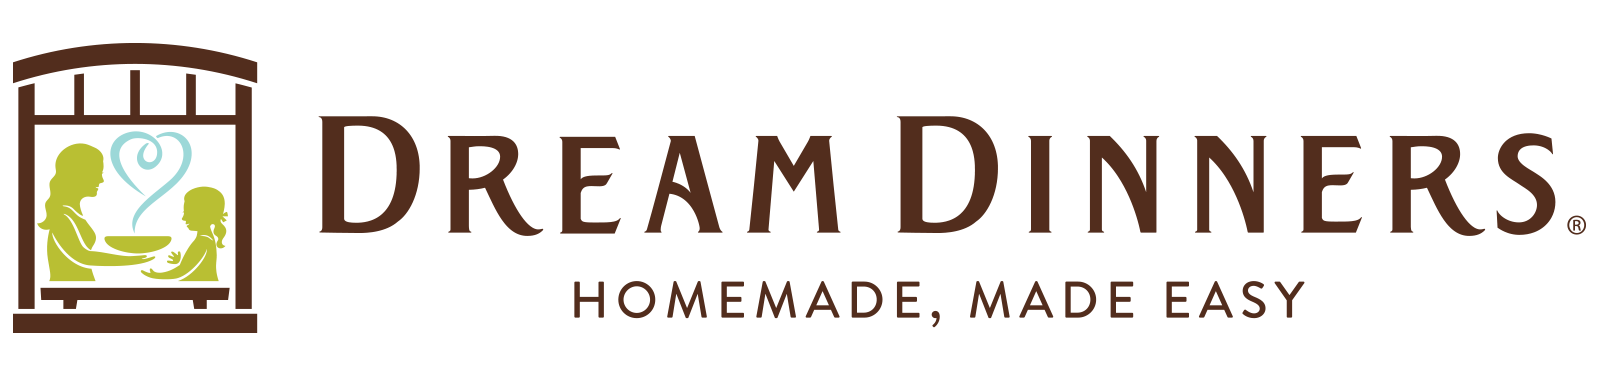 Dream Dinners logo long.png